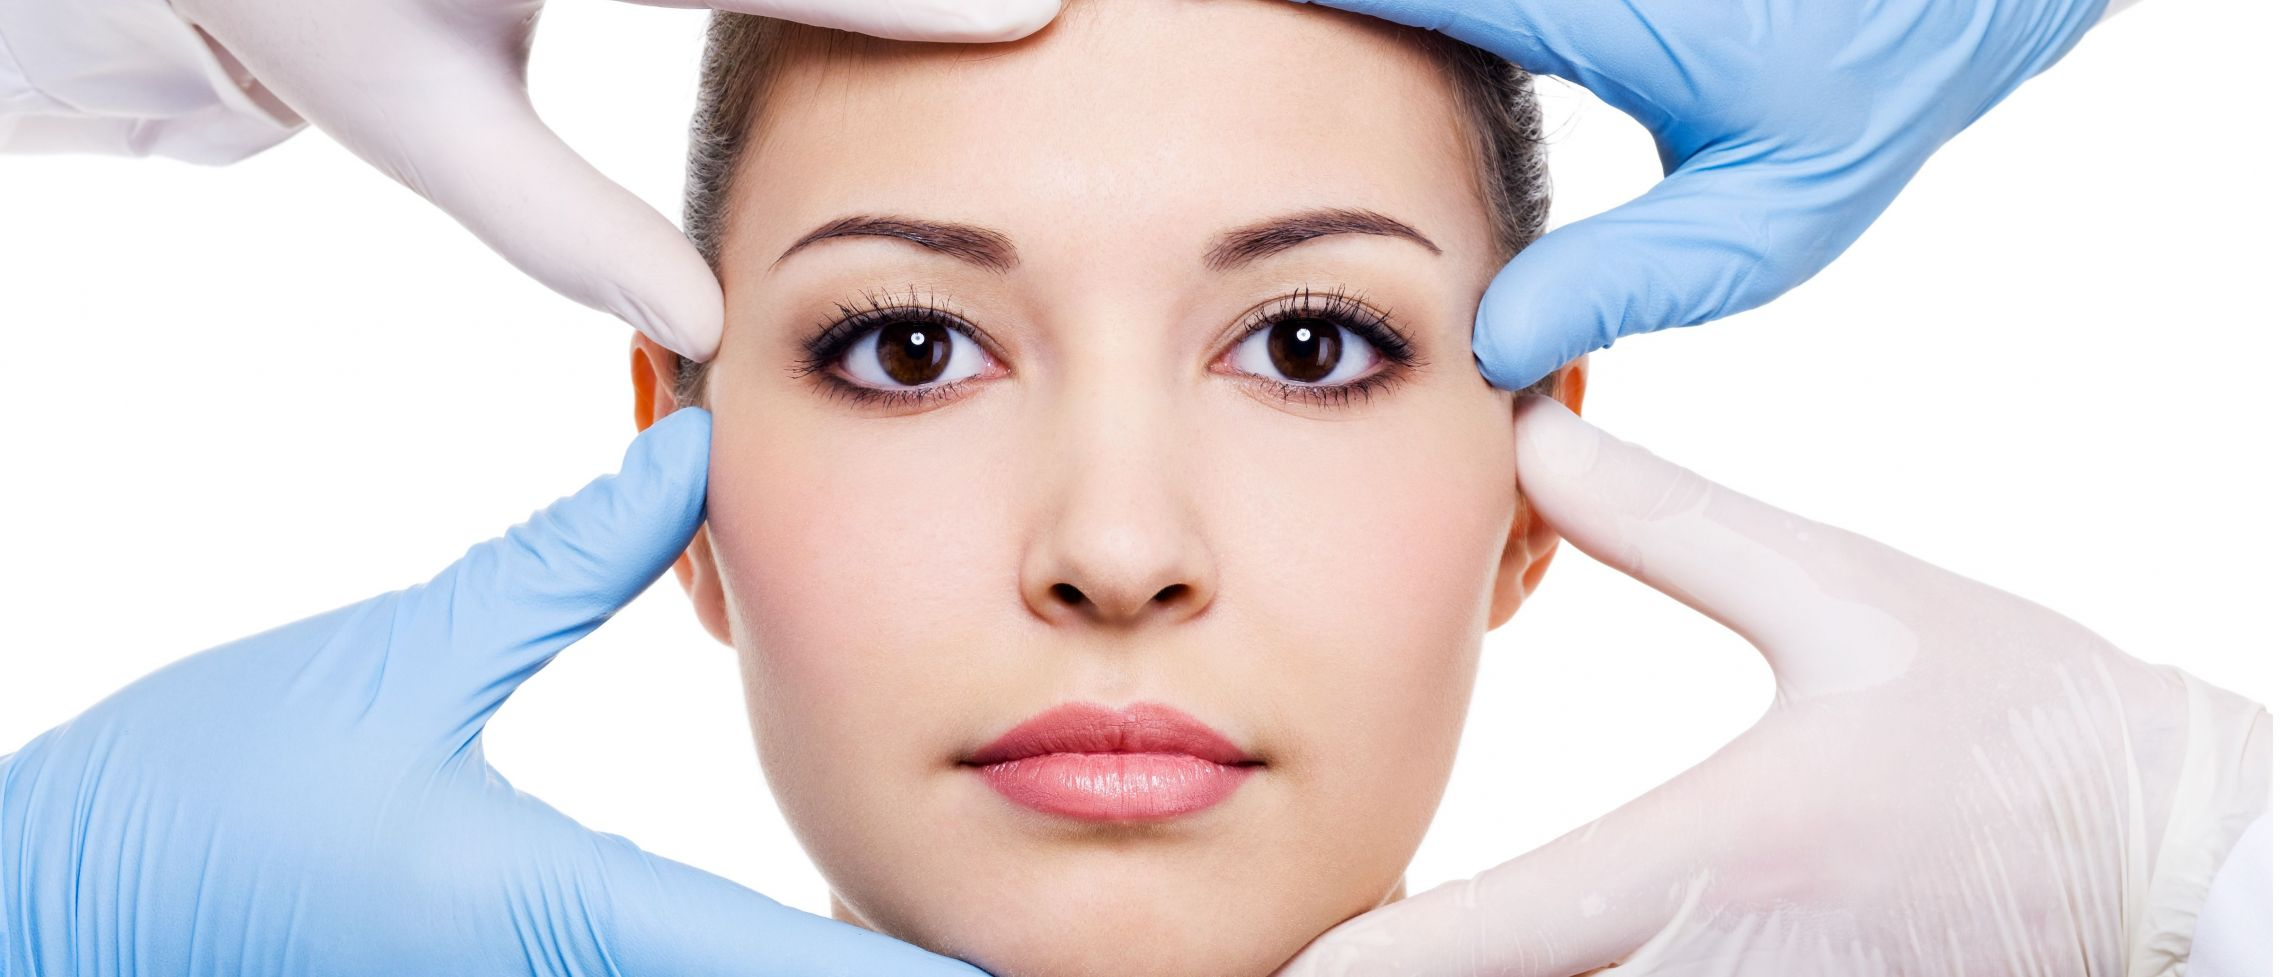 Want to know more about Botox?